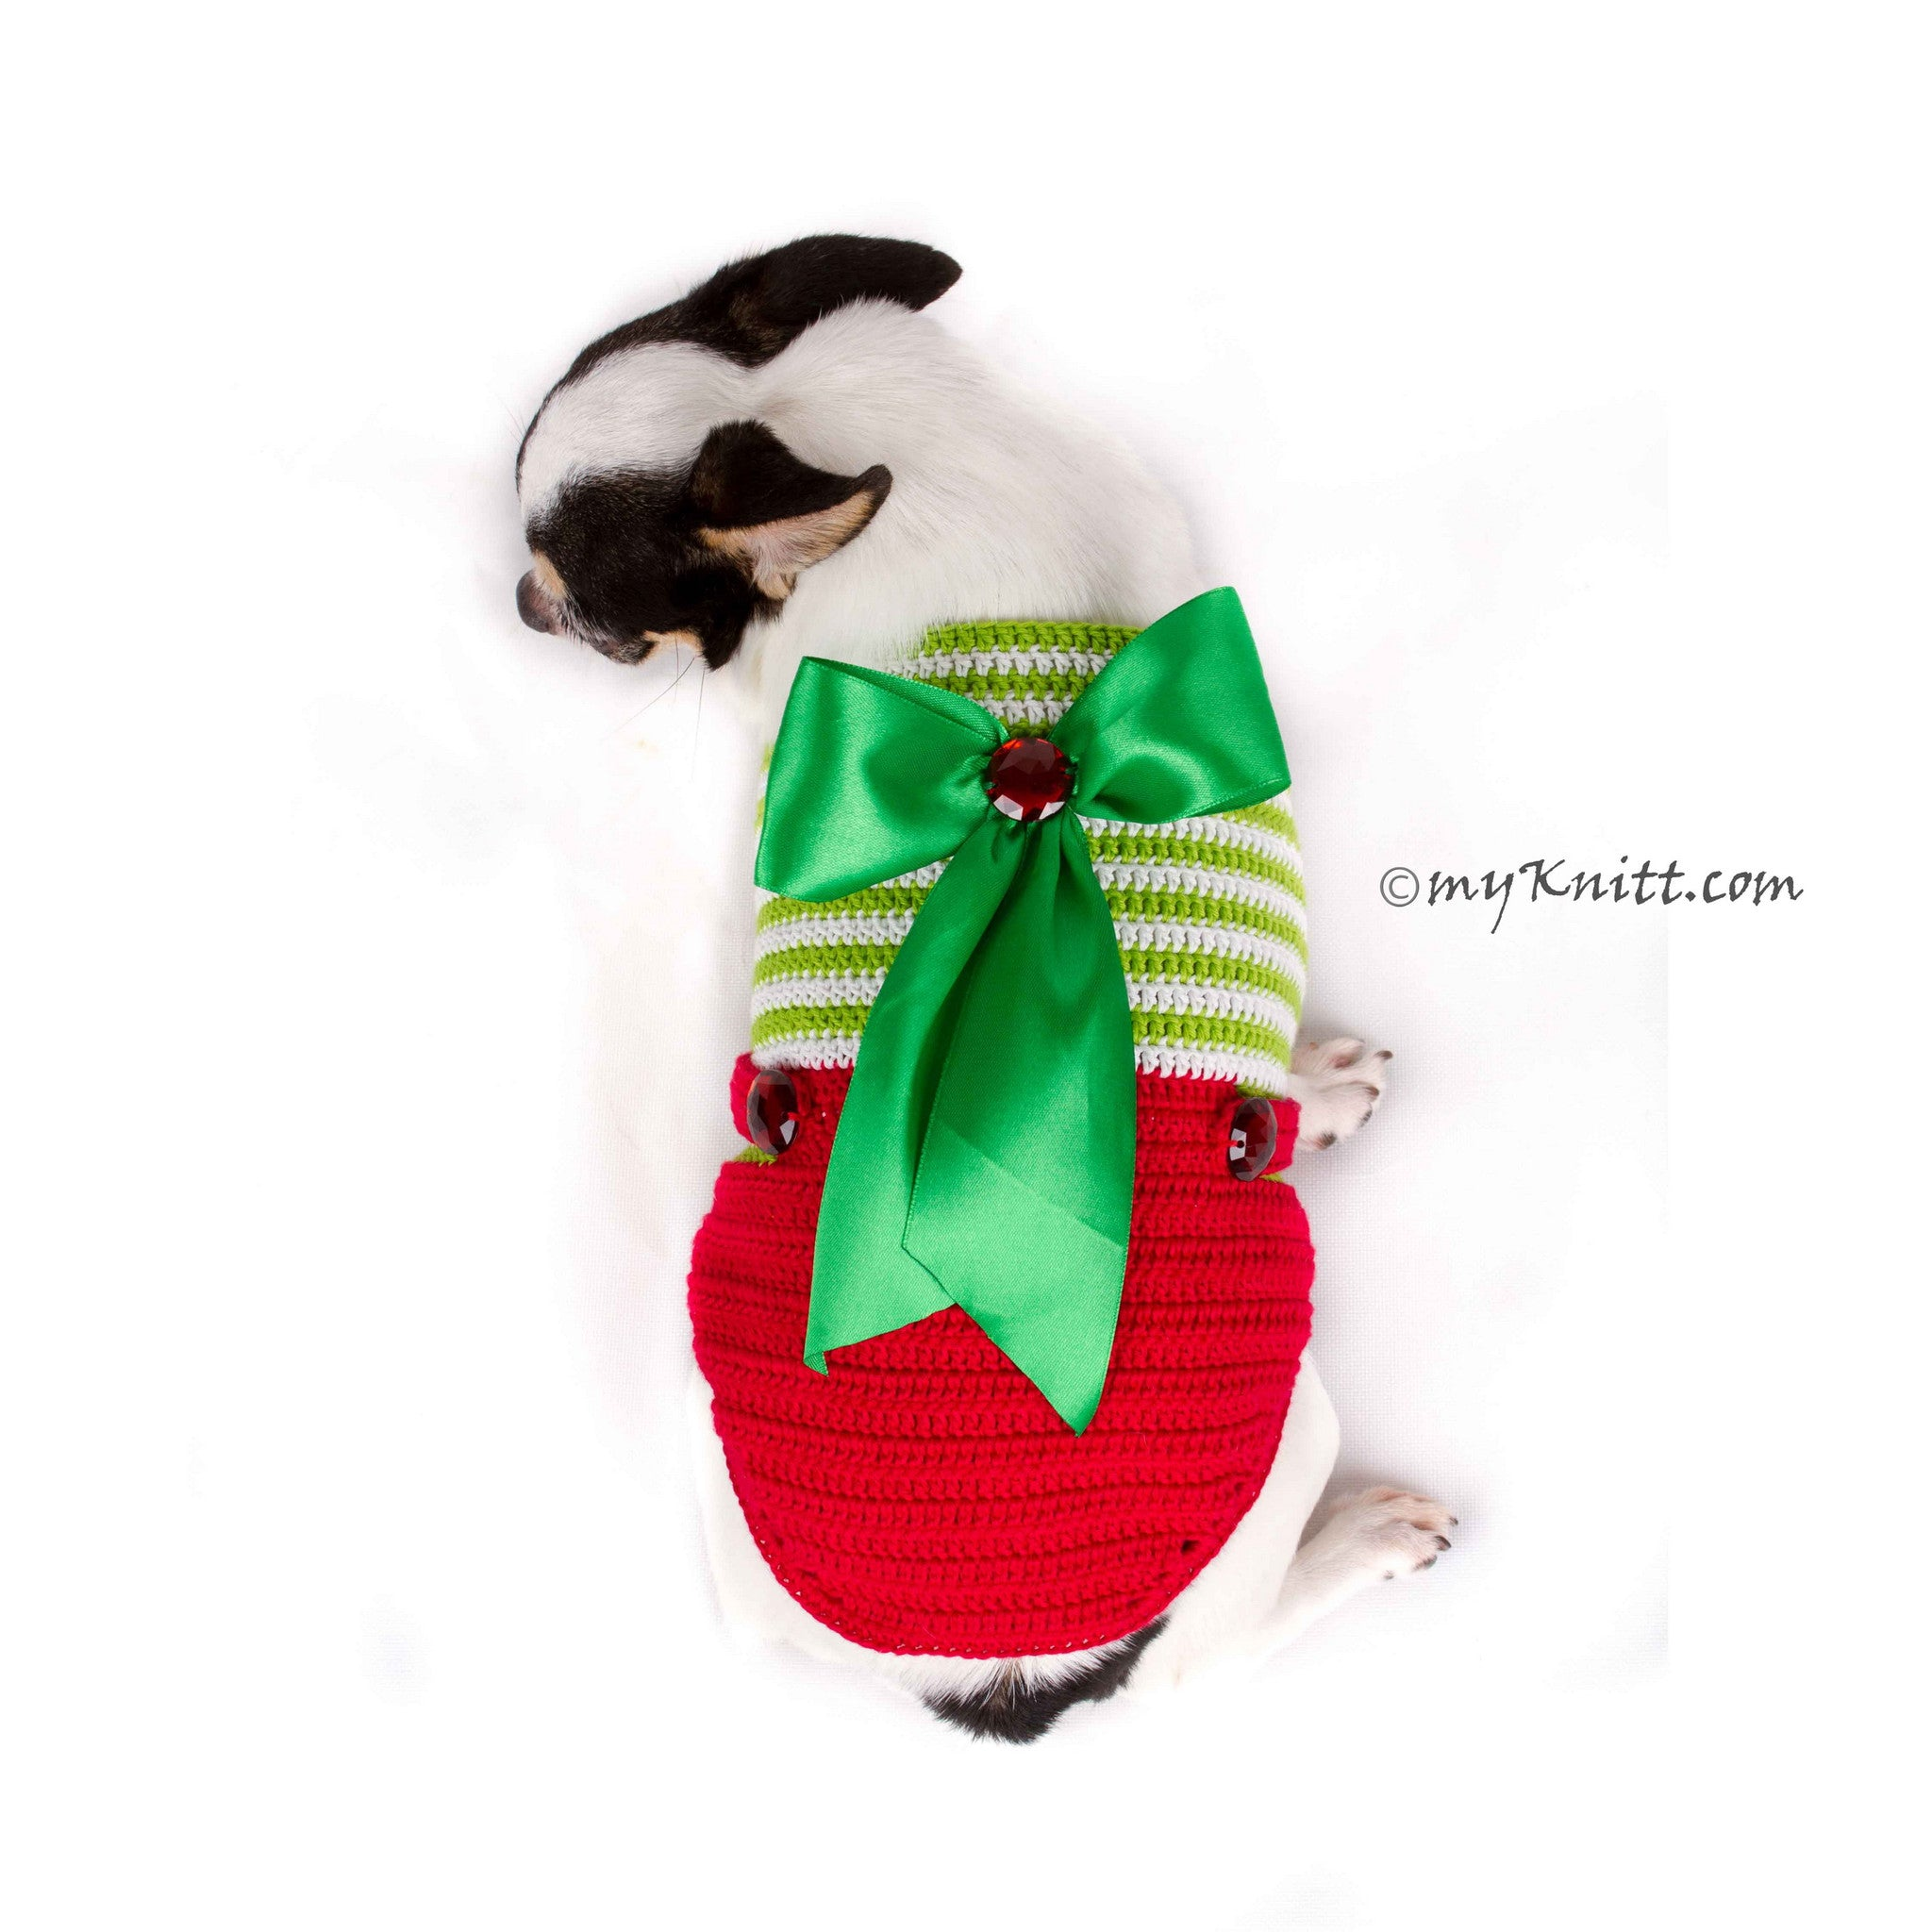 Christmas Overalls Dog Sweater with Big Bows DF78 by Myknitt